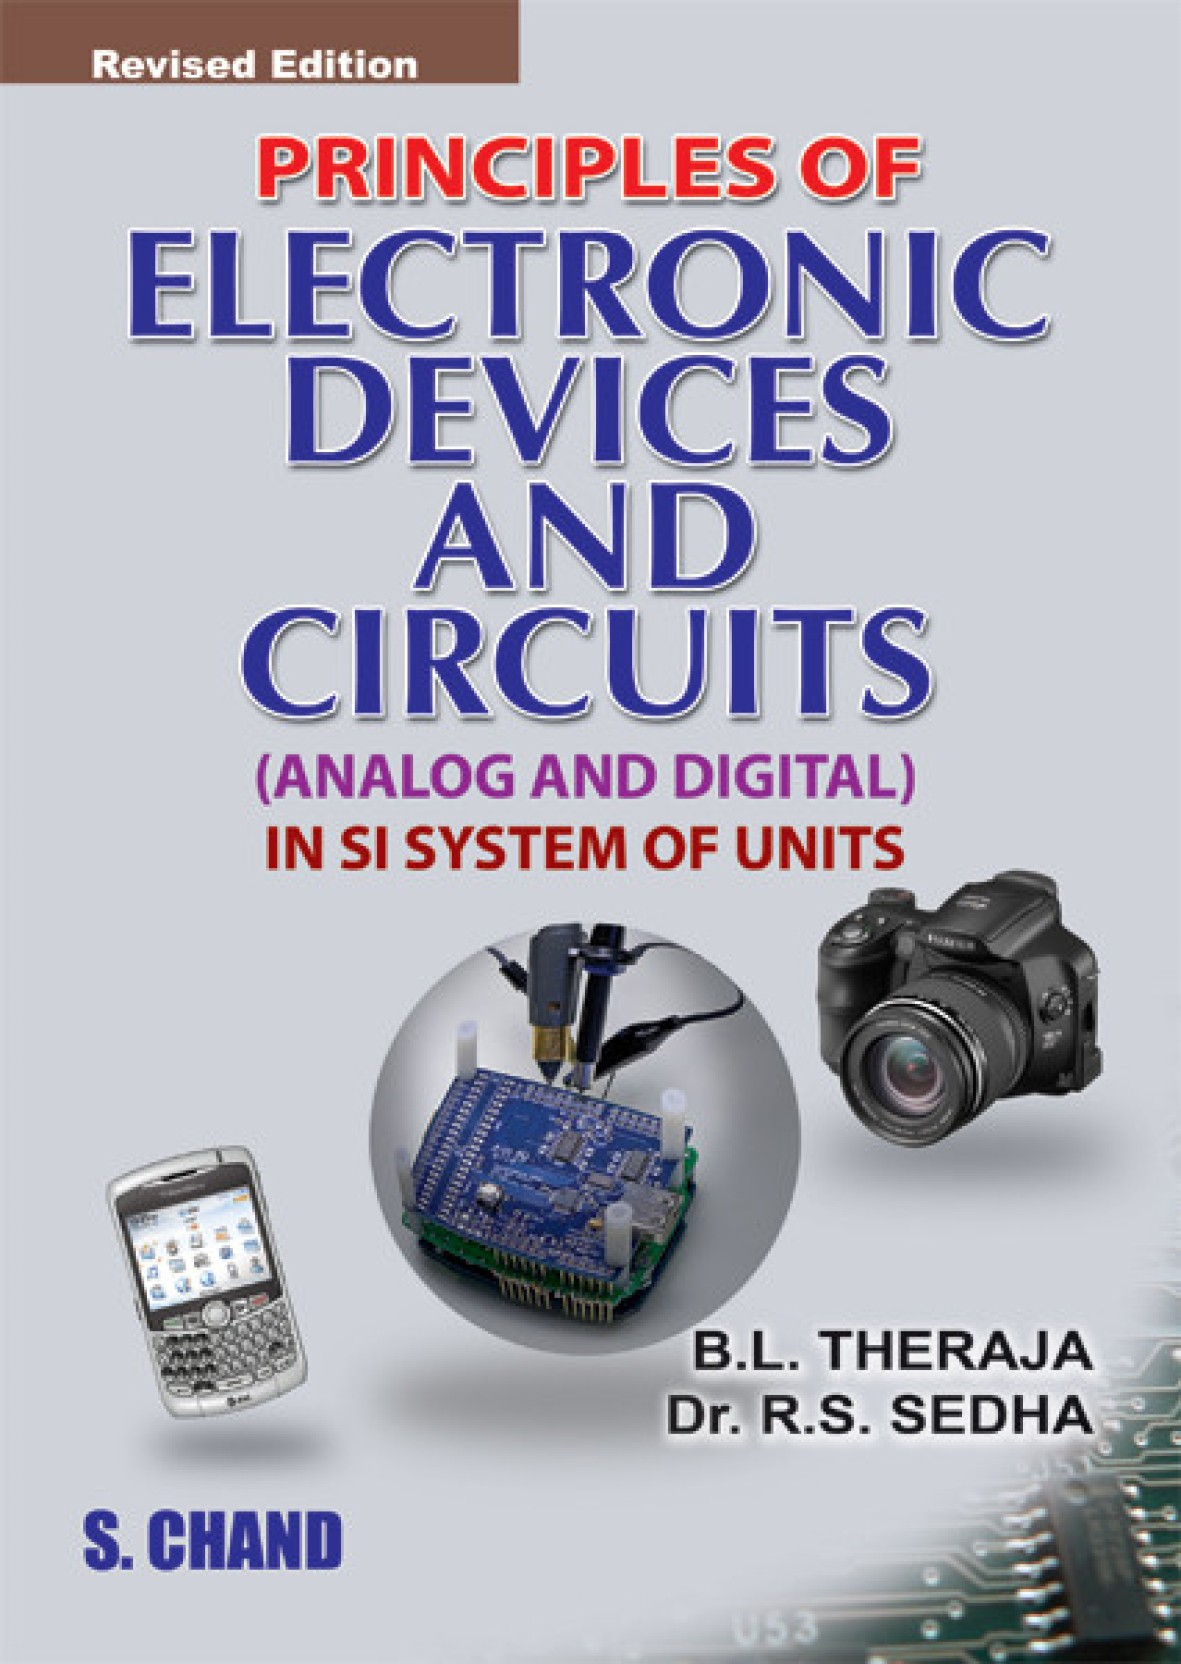 Principles Of Electronic Devices Circuits Reprint Edn 2006 Rs Sedha Pdf And Add To Cart